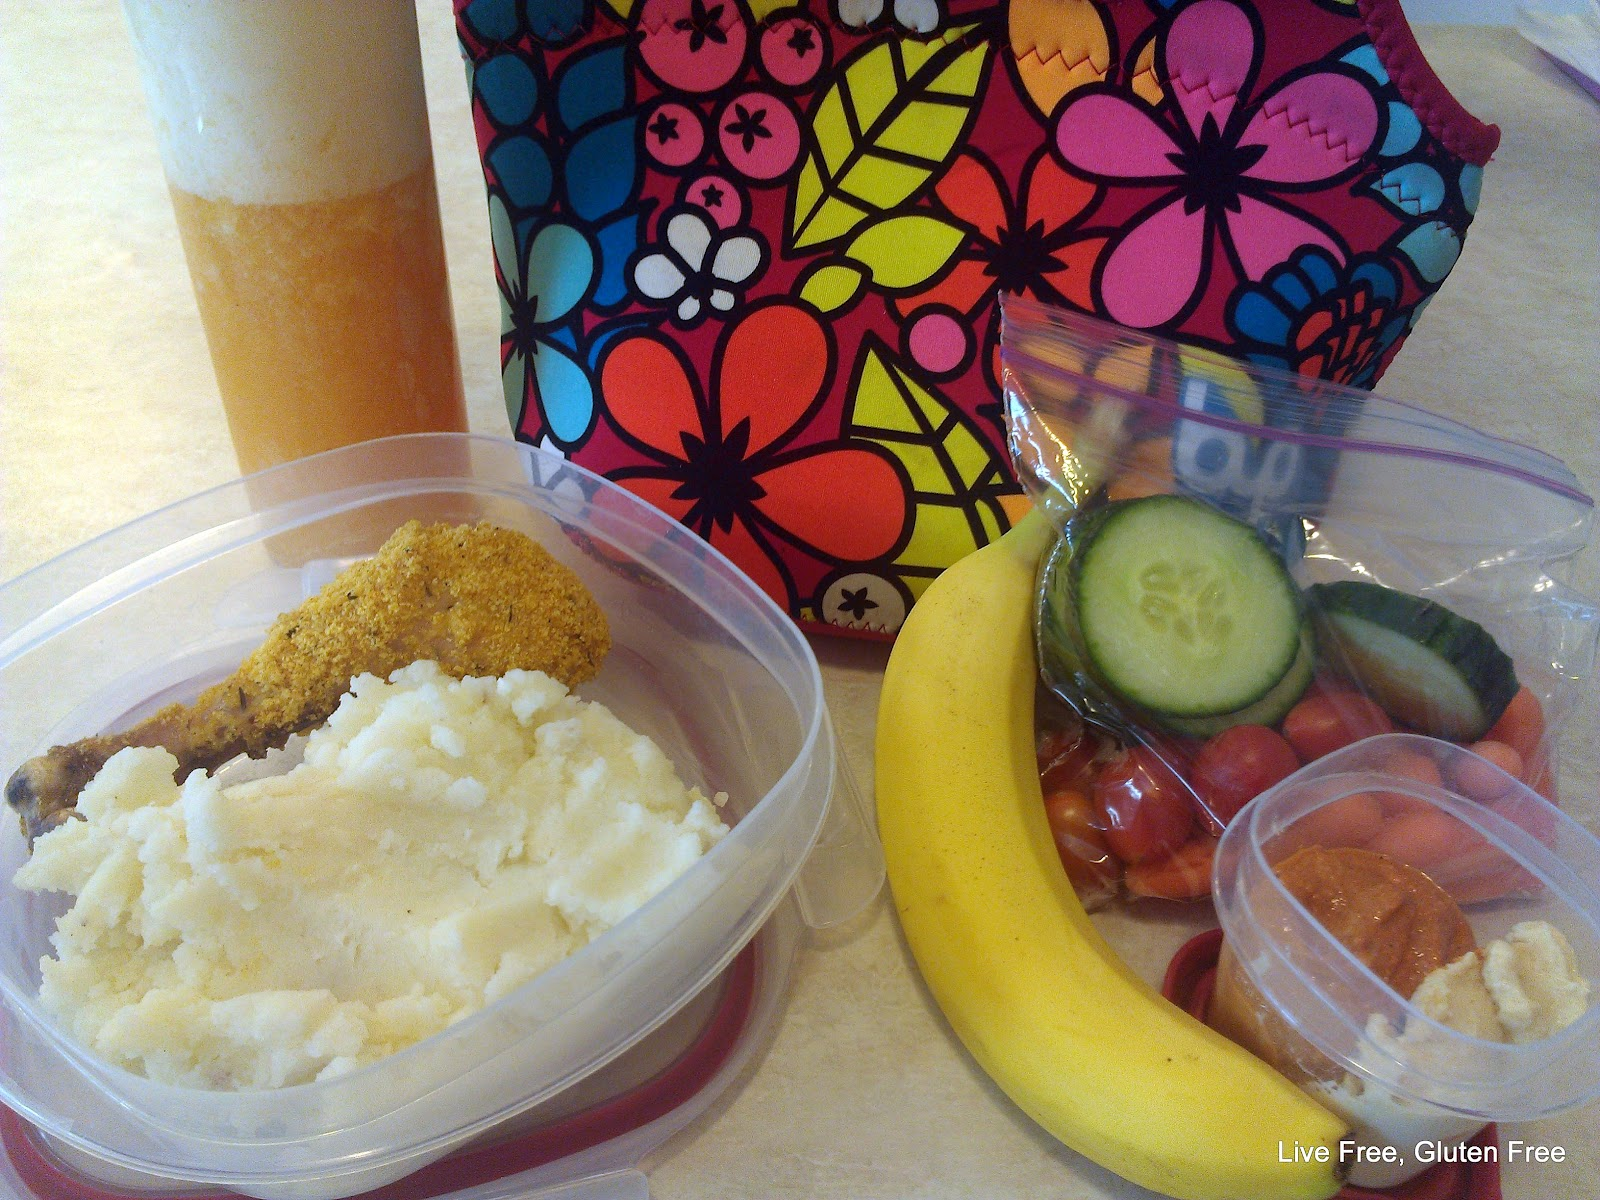 Healthy Lunchbox 2014: Kate from Eat, Recycle, Repeat